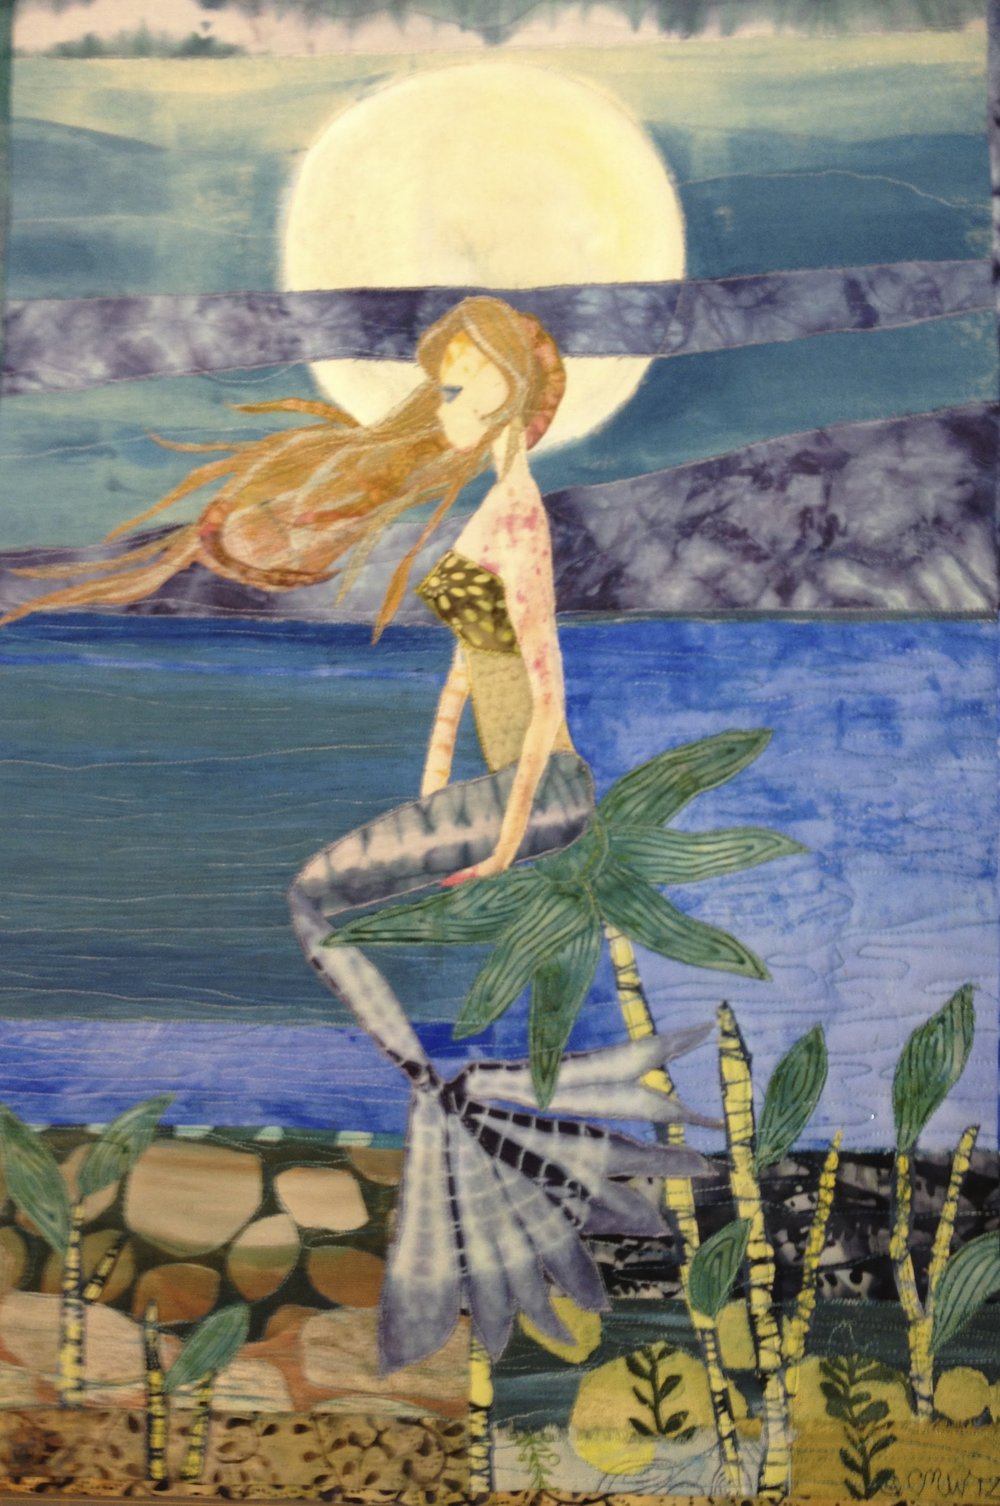 Mermaid with Full Moon